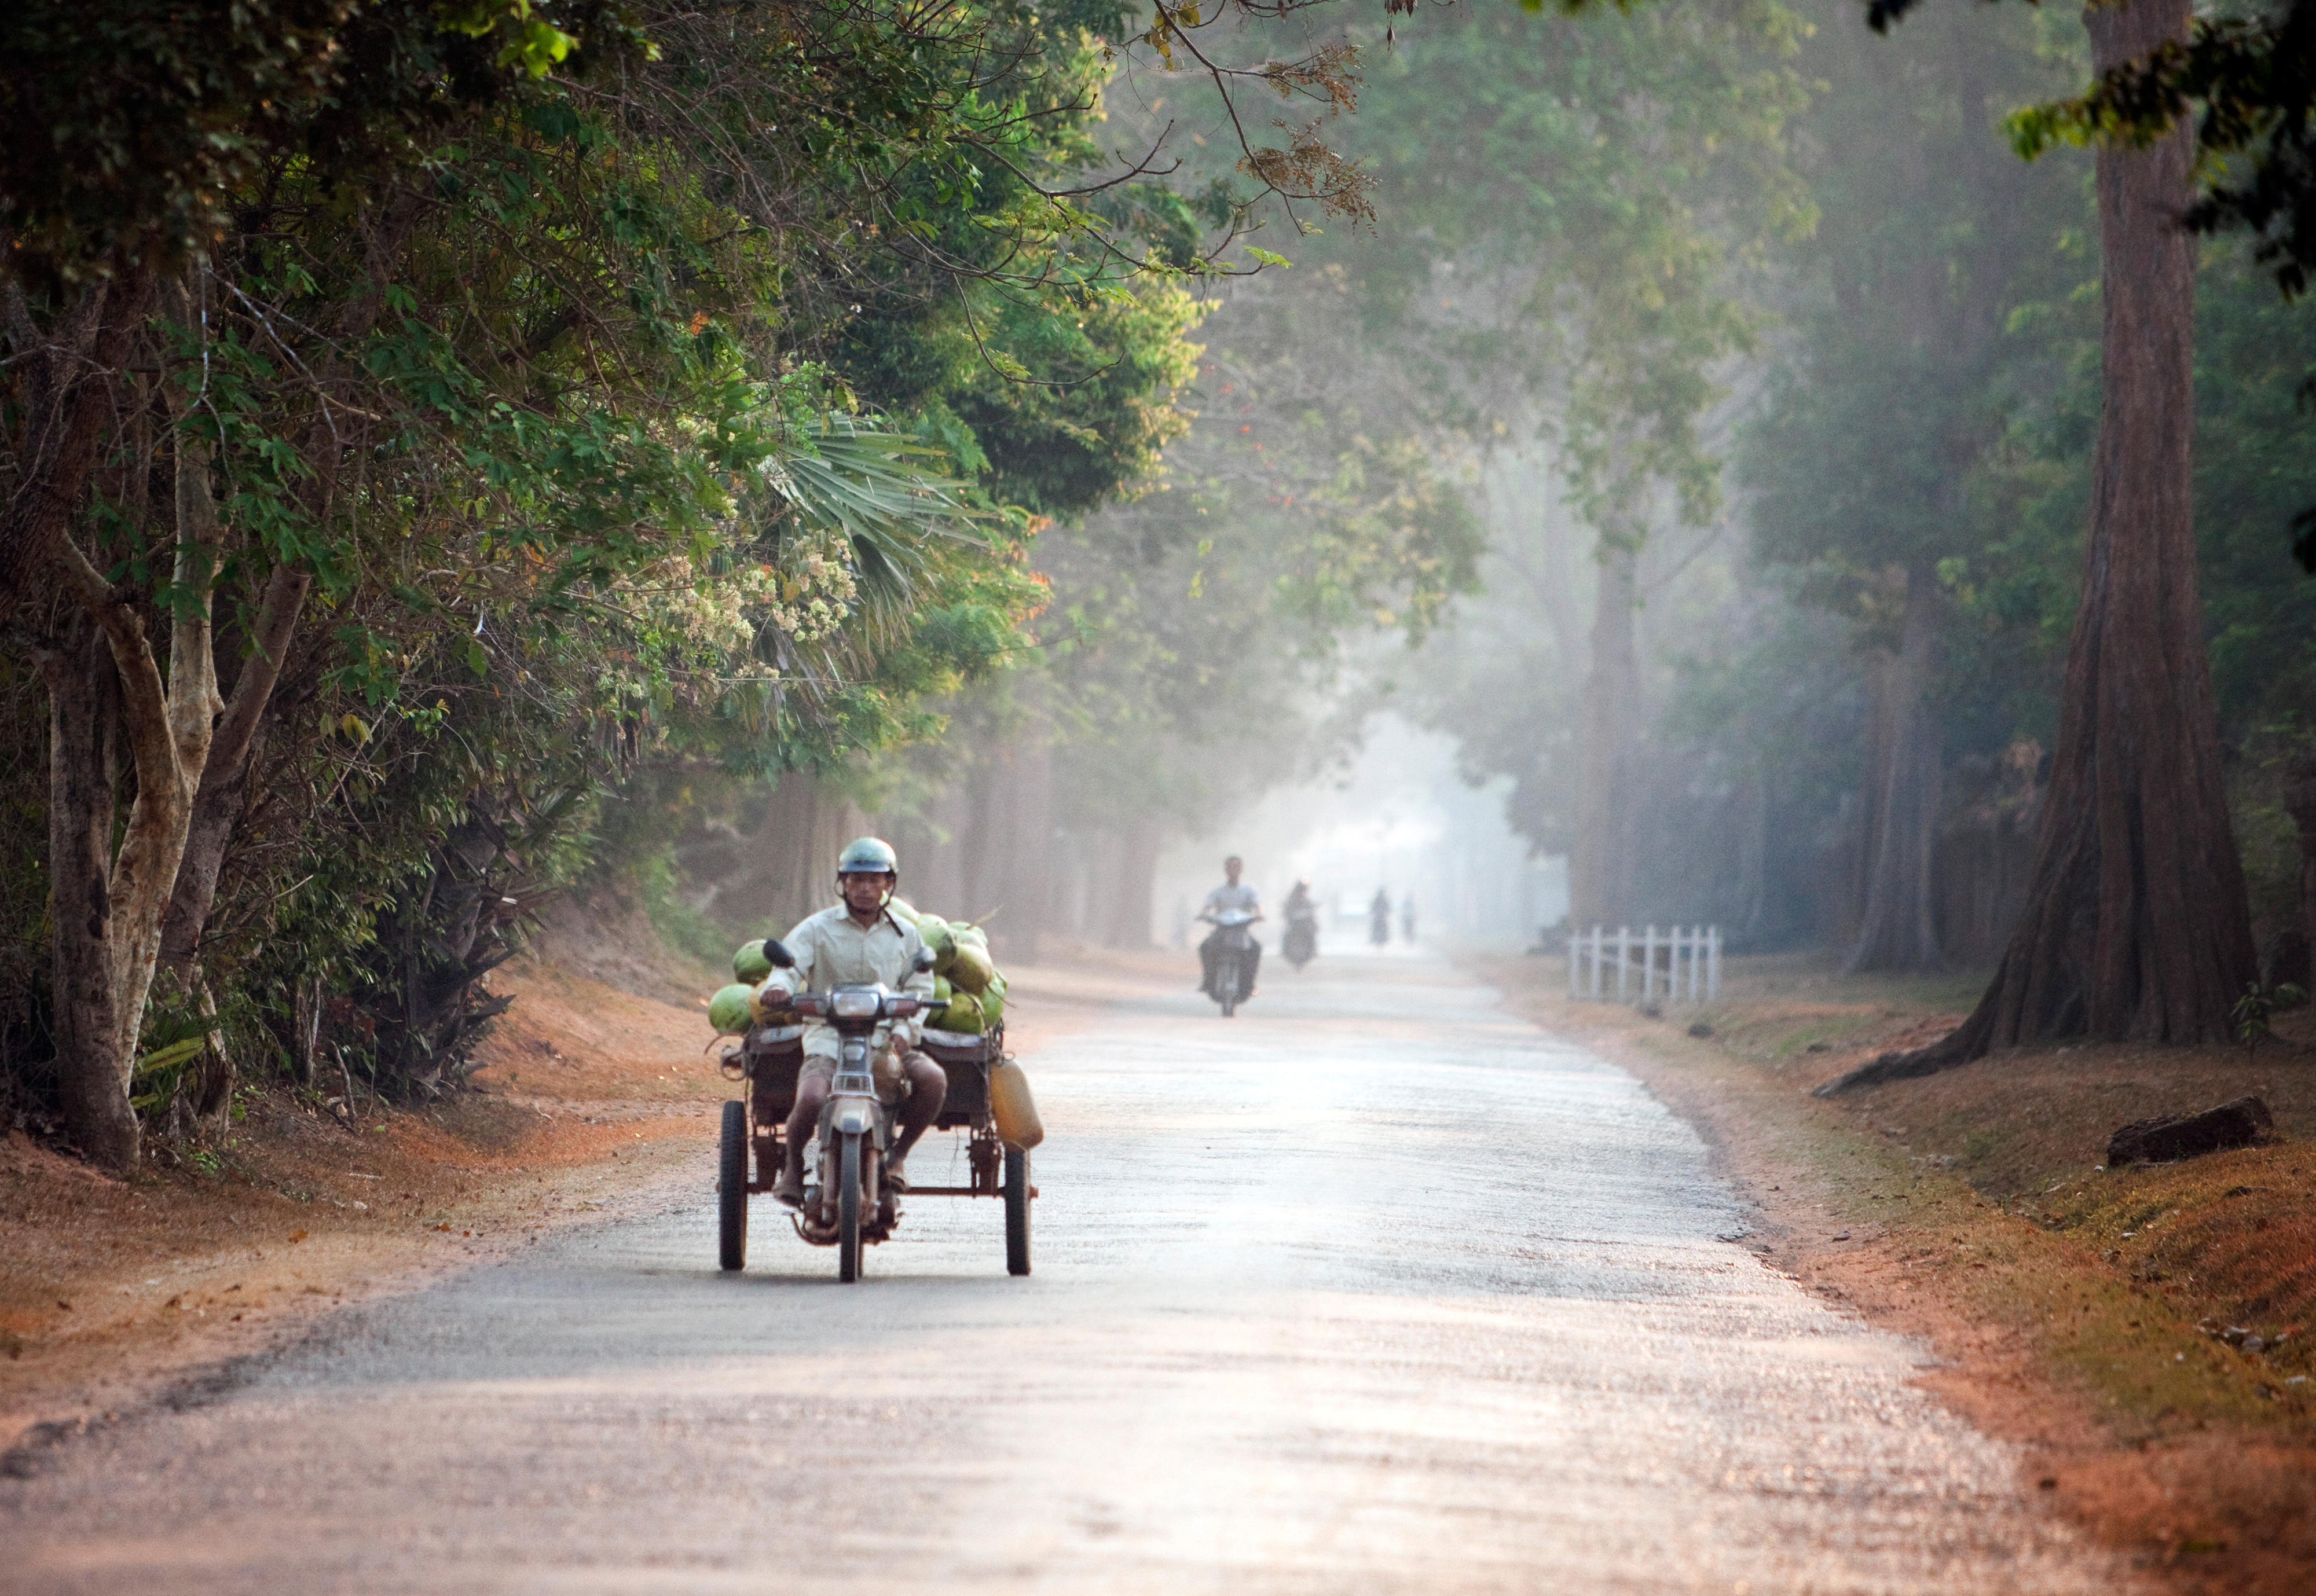 Motorcycle on a road in Siem Reap, Cambodia